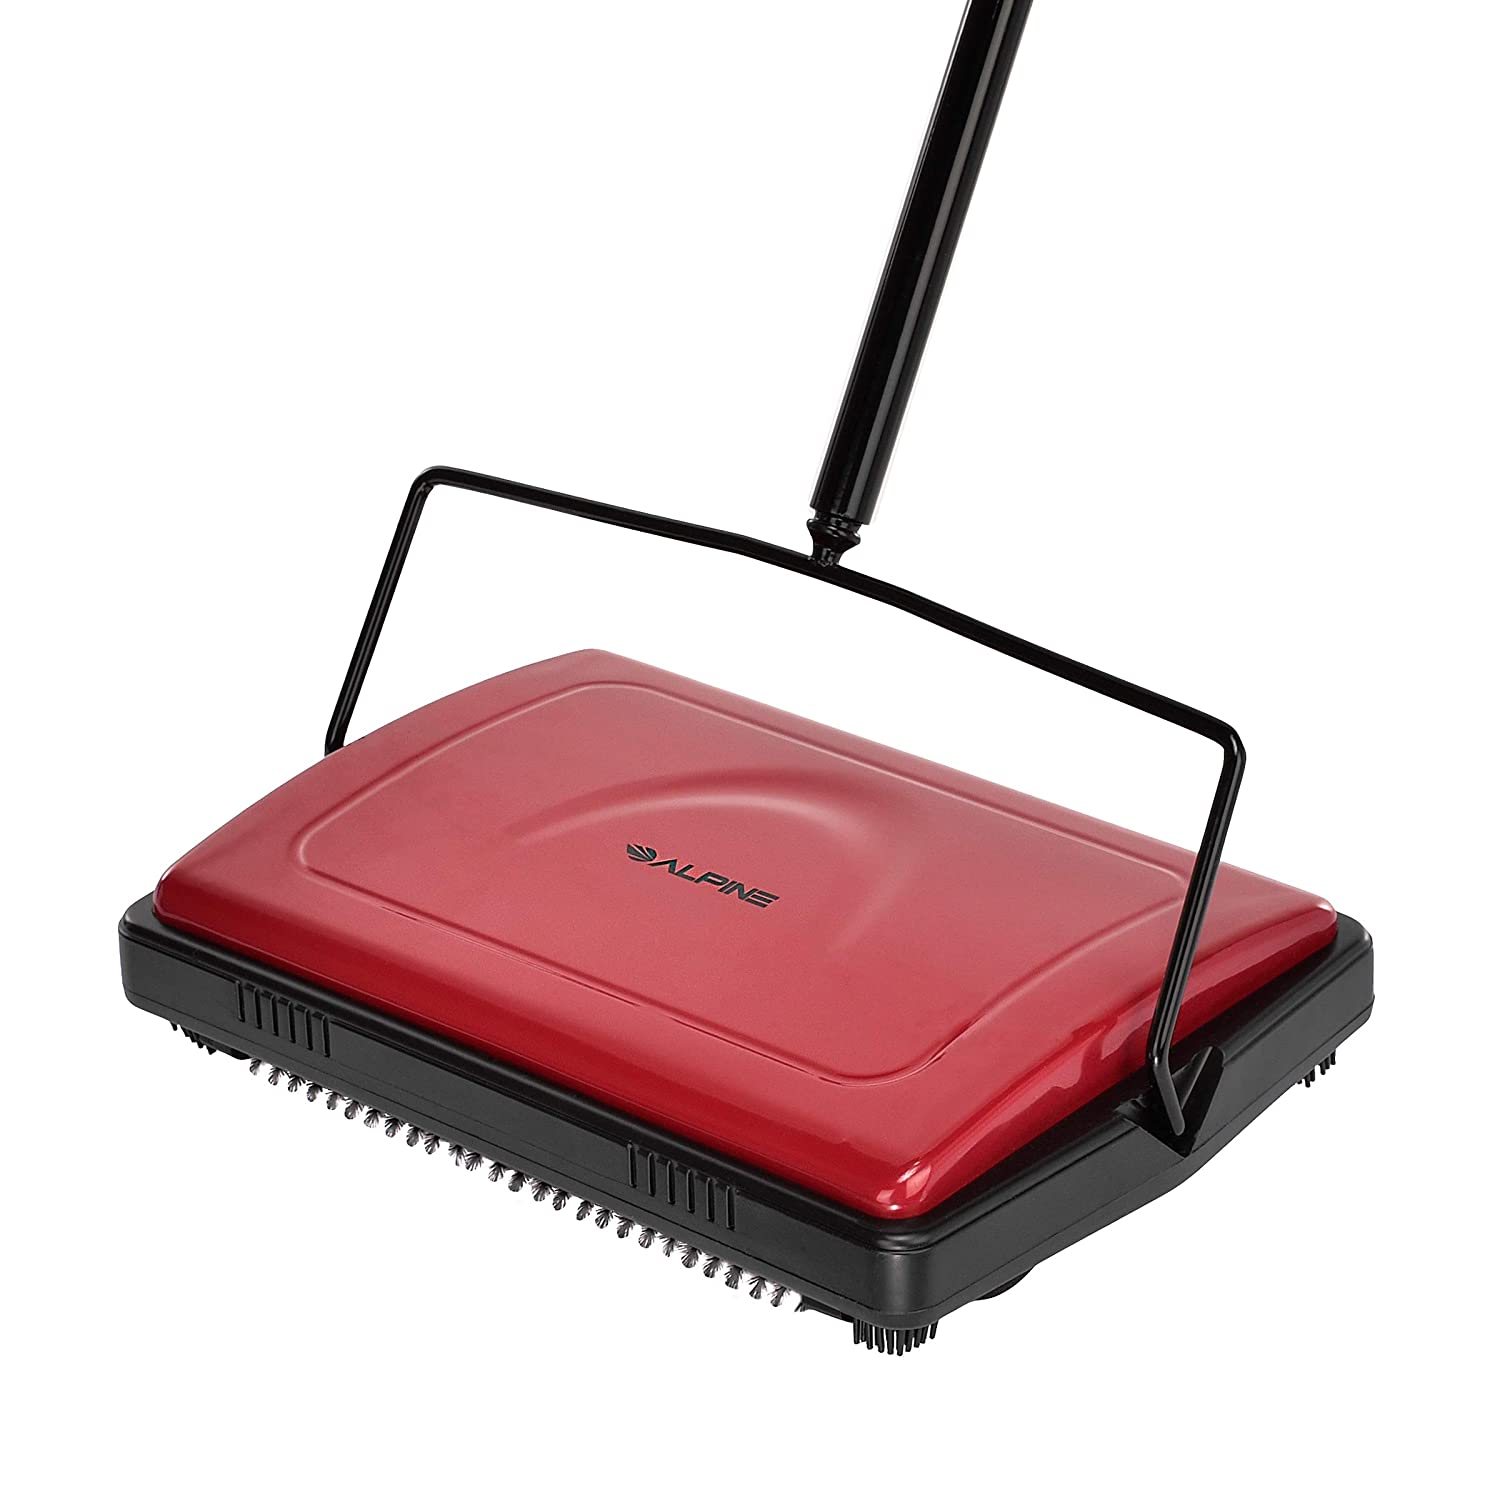 Alpine Industries Triple Brush Floor & Carpet Sweeper – Heavy Duty & Non Electric Multi-Surface Cleaner - Easy Manual Sweeping for Carpeted Floors (Red)